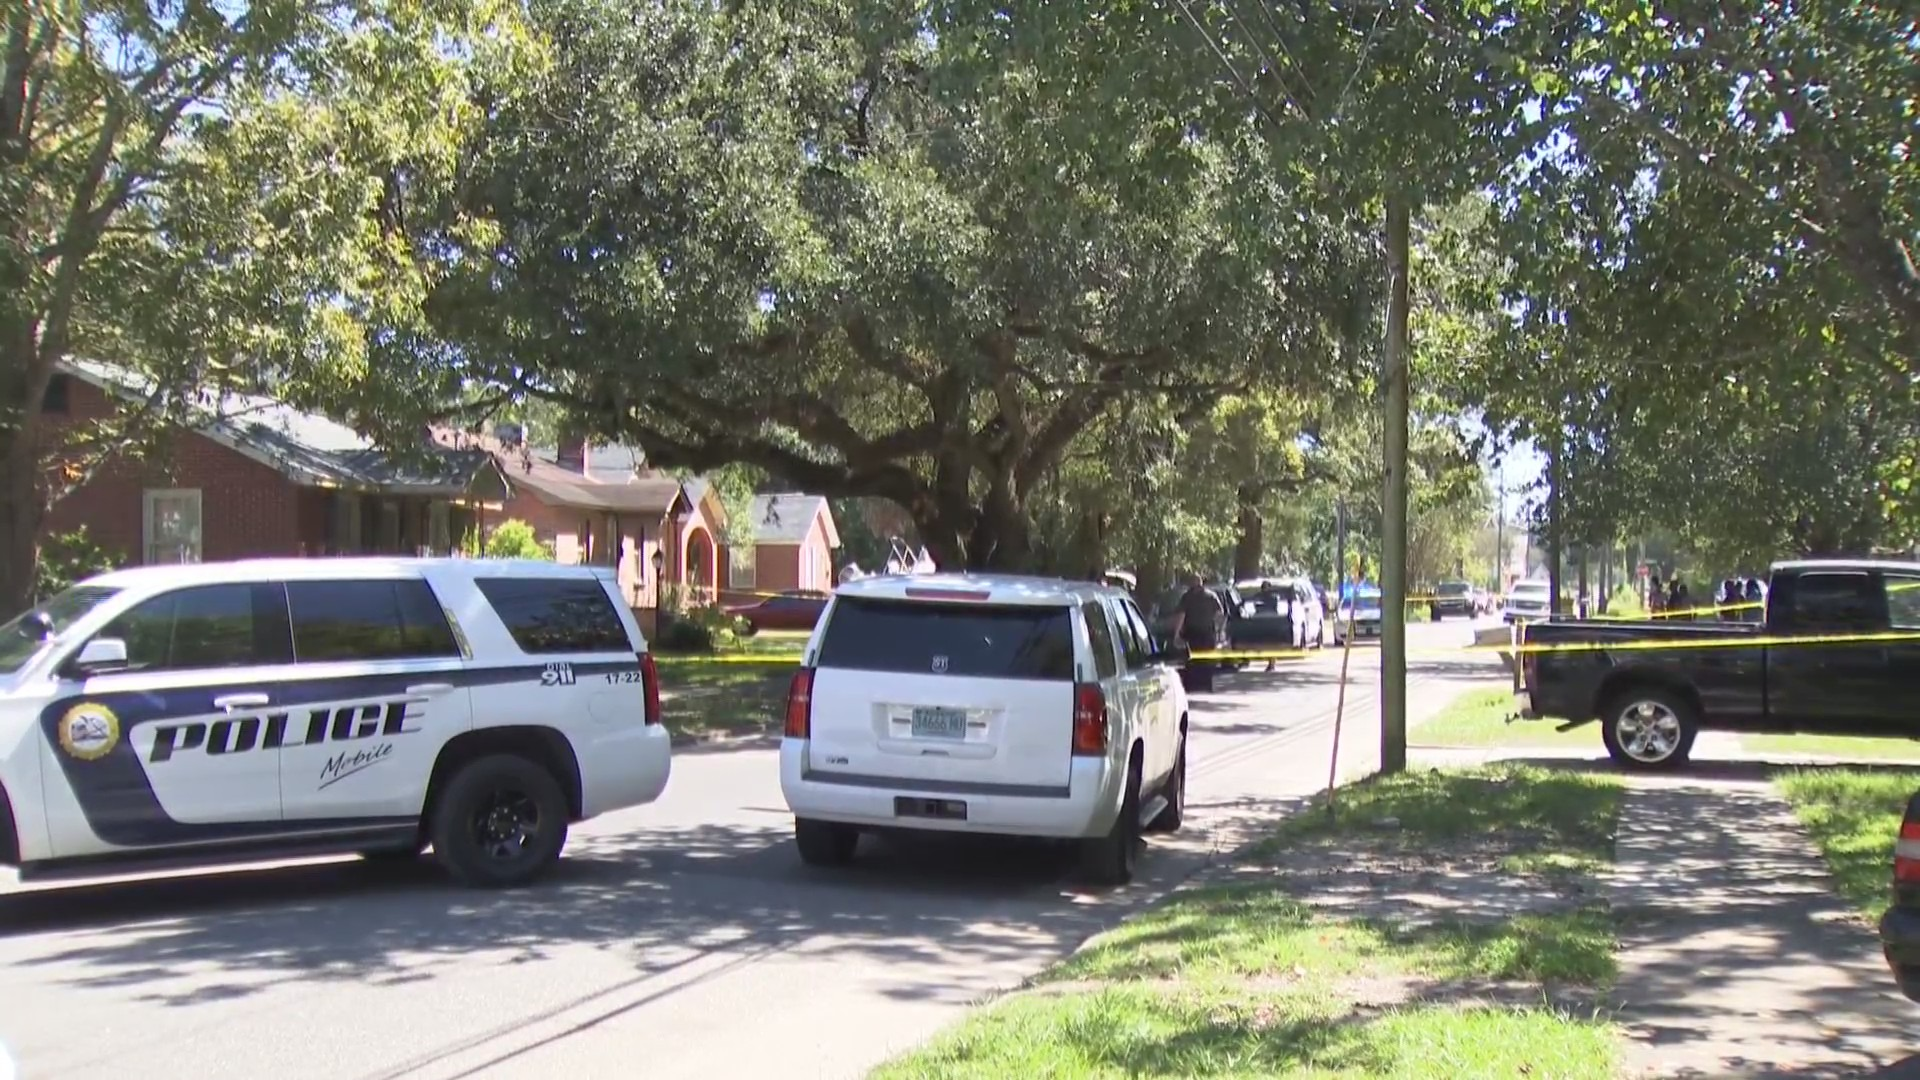 Mobile detectives to present Weinacker Ave. homicide evidence to Grand Jury